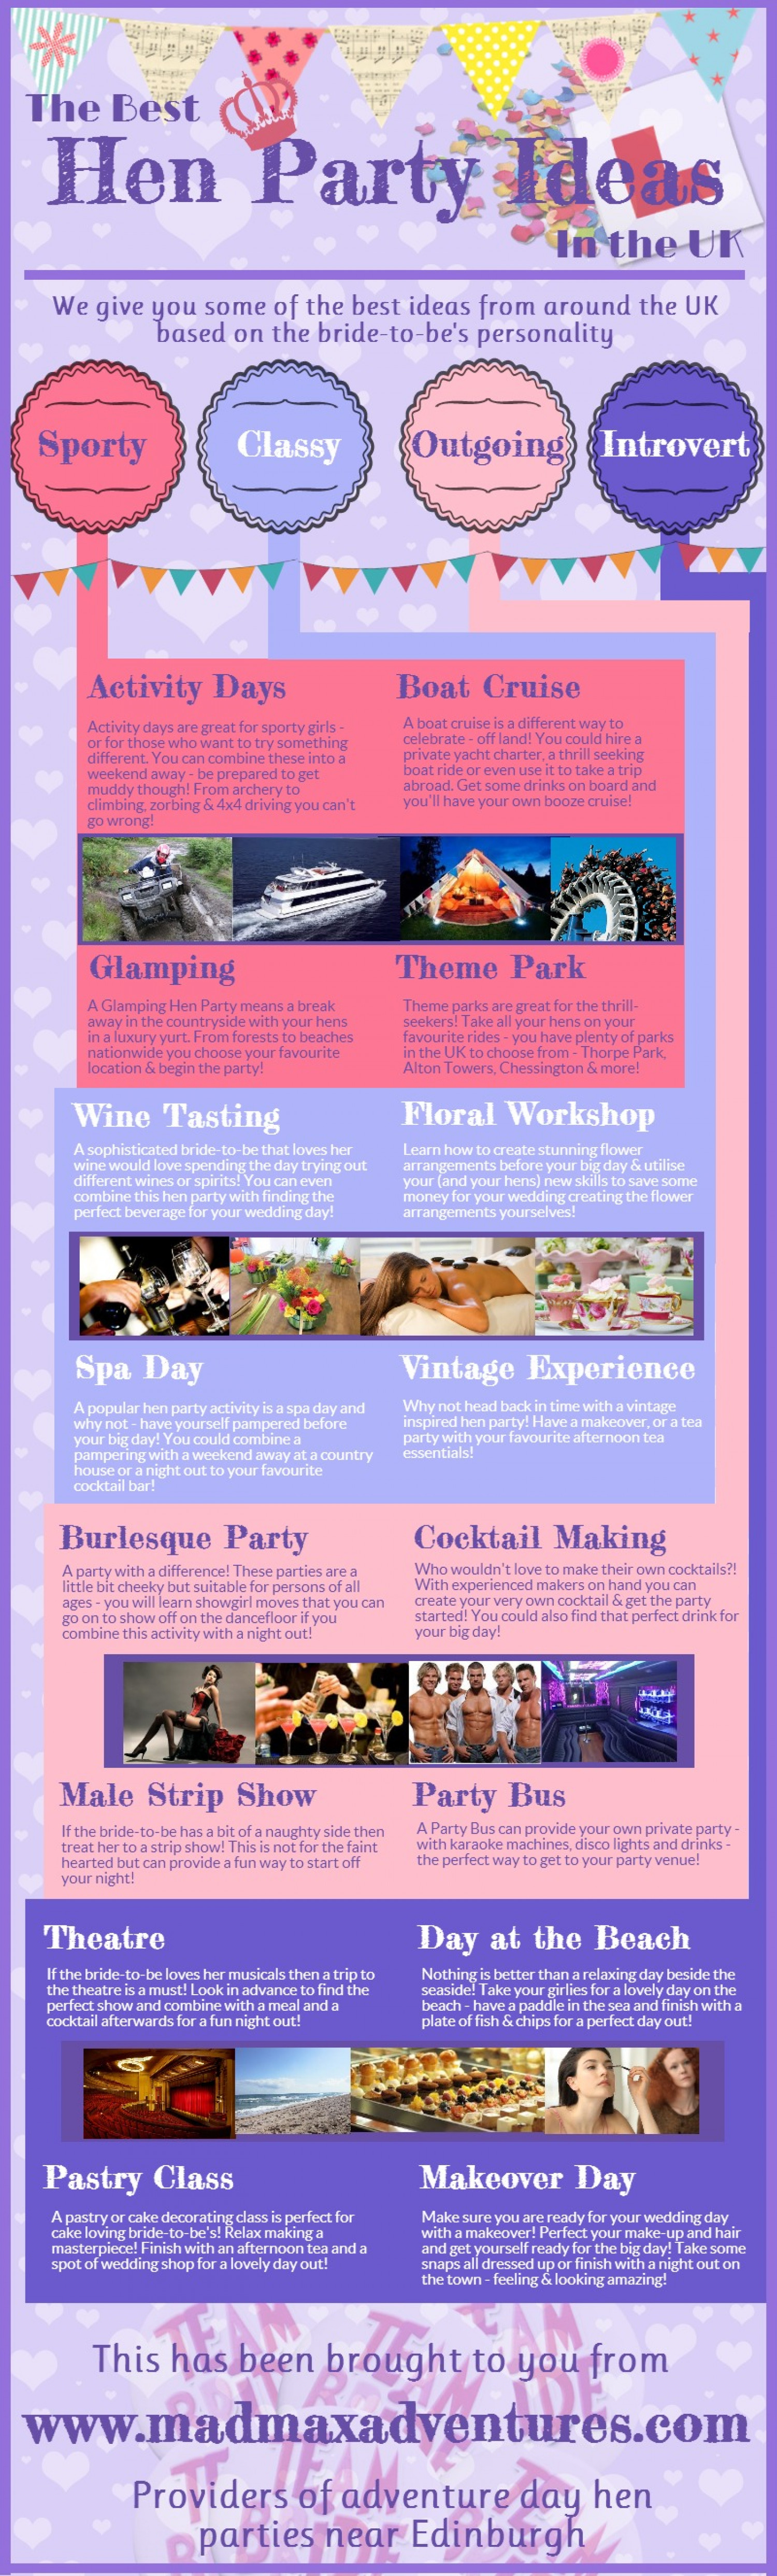 Hen Party Ideas in the UK Infographic